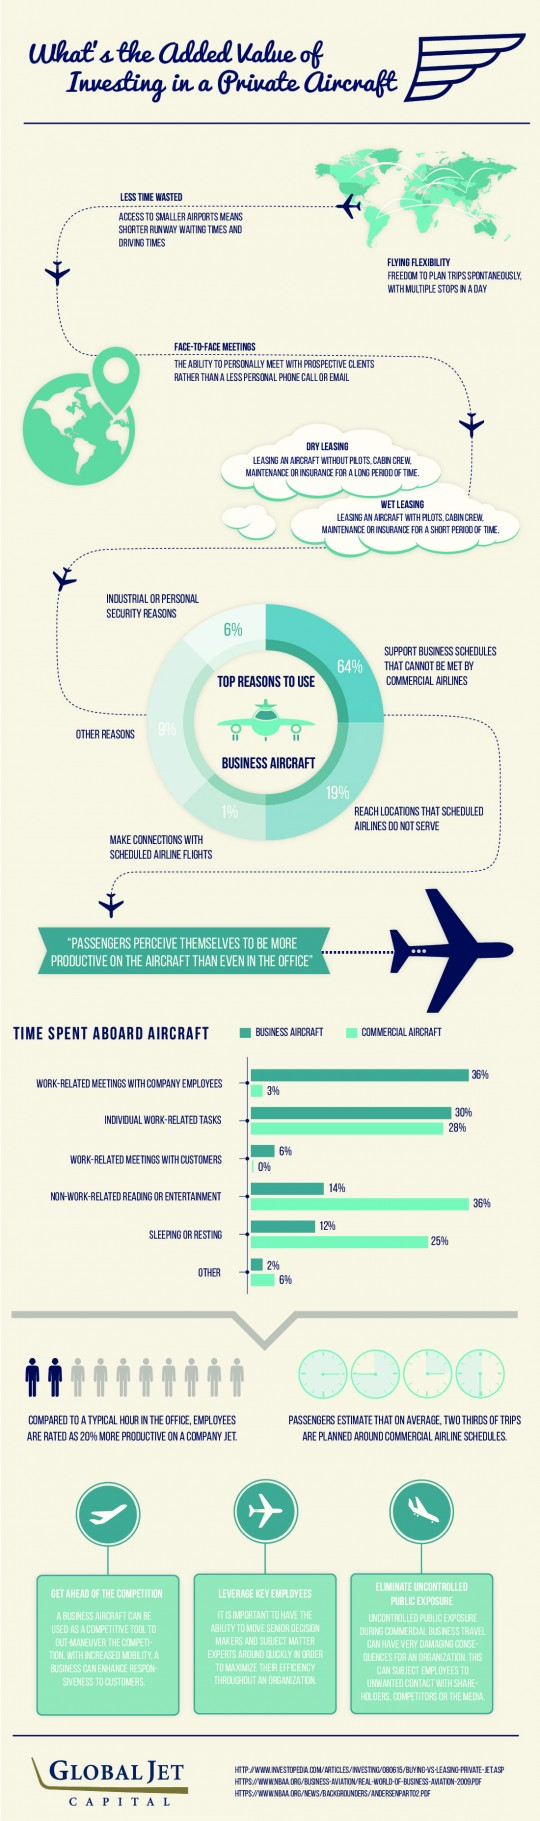 Added Value of Private Aircraft Investment